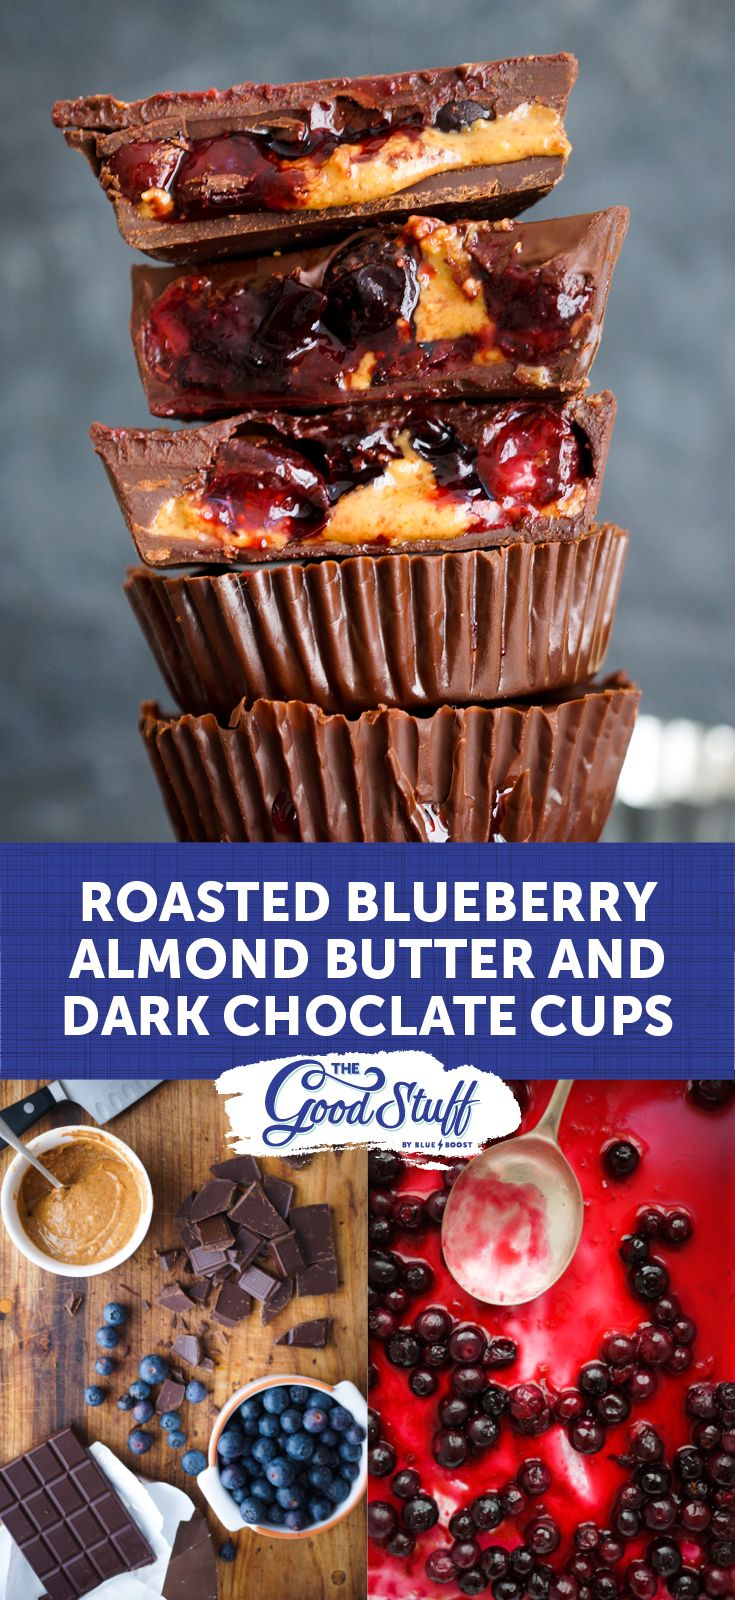 Roasted blueberry, almond butter and dark chocolate cups   These bite-sized treats are pretty much the epitome of deliciousness – sweet, creamy and chocolatey.  #Blueberry #BlueboostSA #AlmondButter #Roasted #Roast #Chocolatecups #Chocolate #Healthy #GoodFood